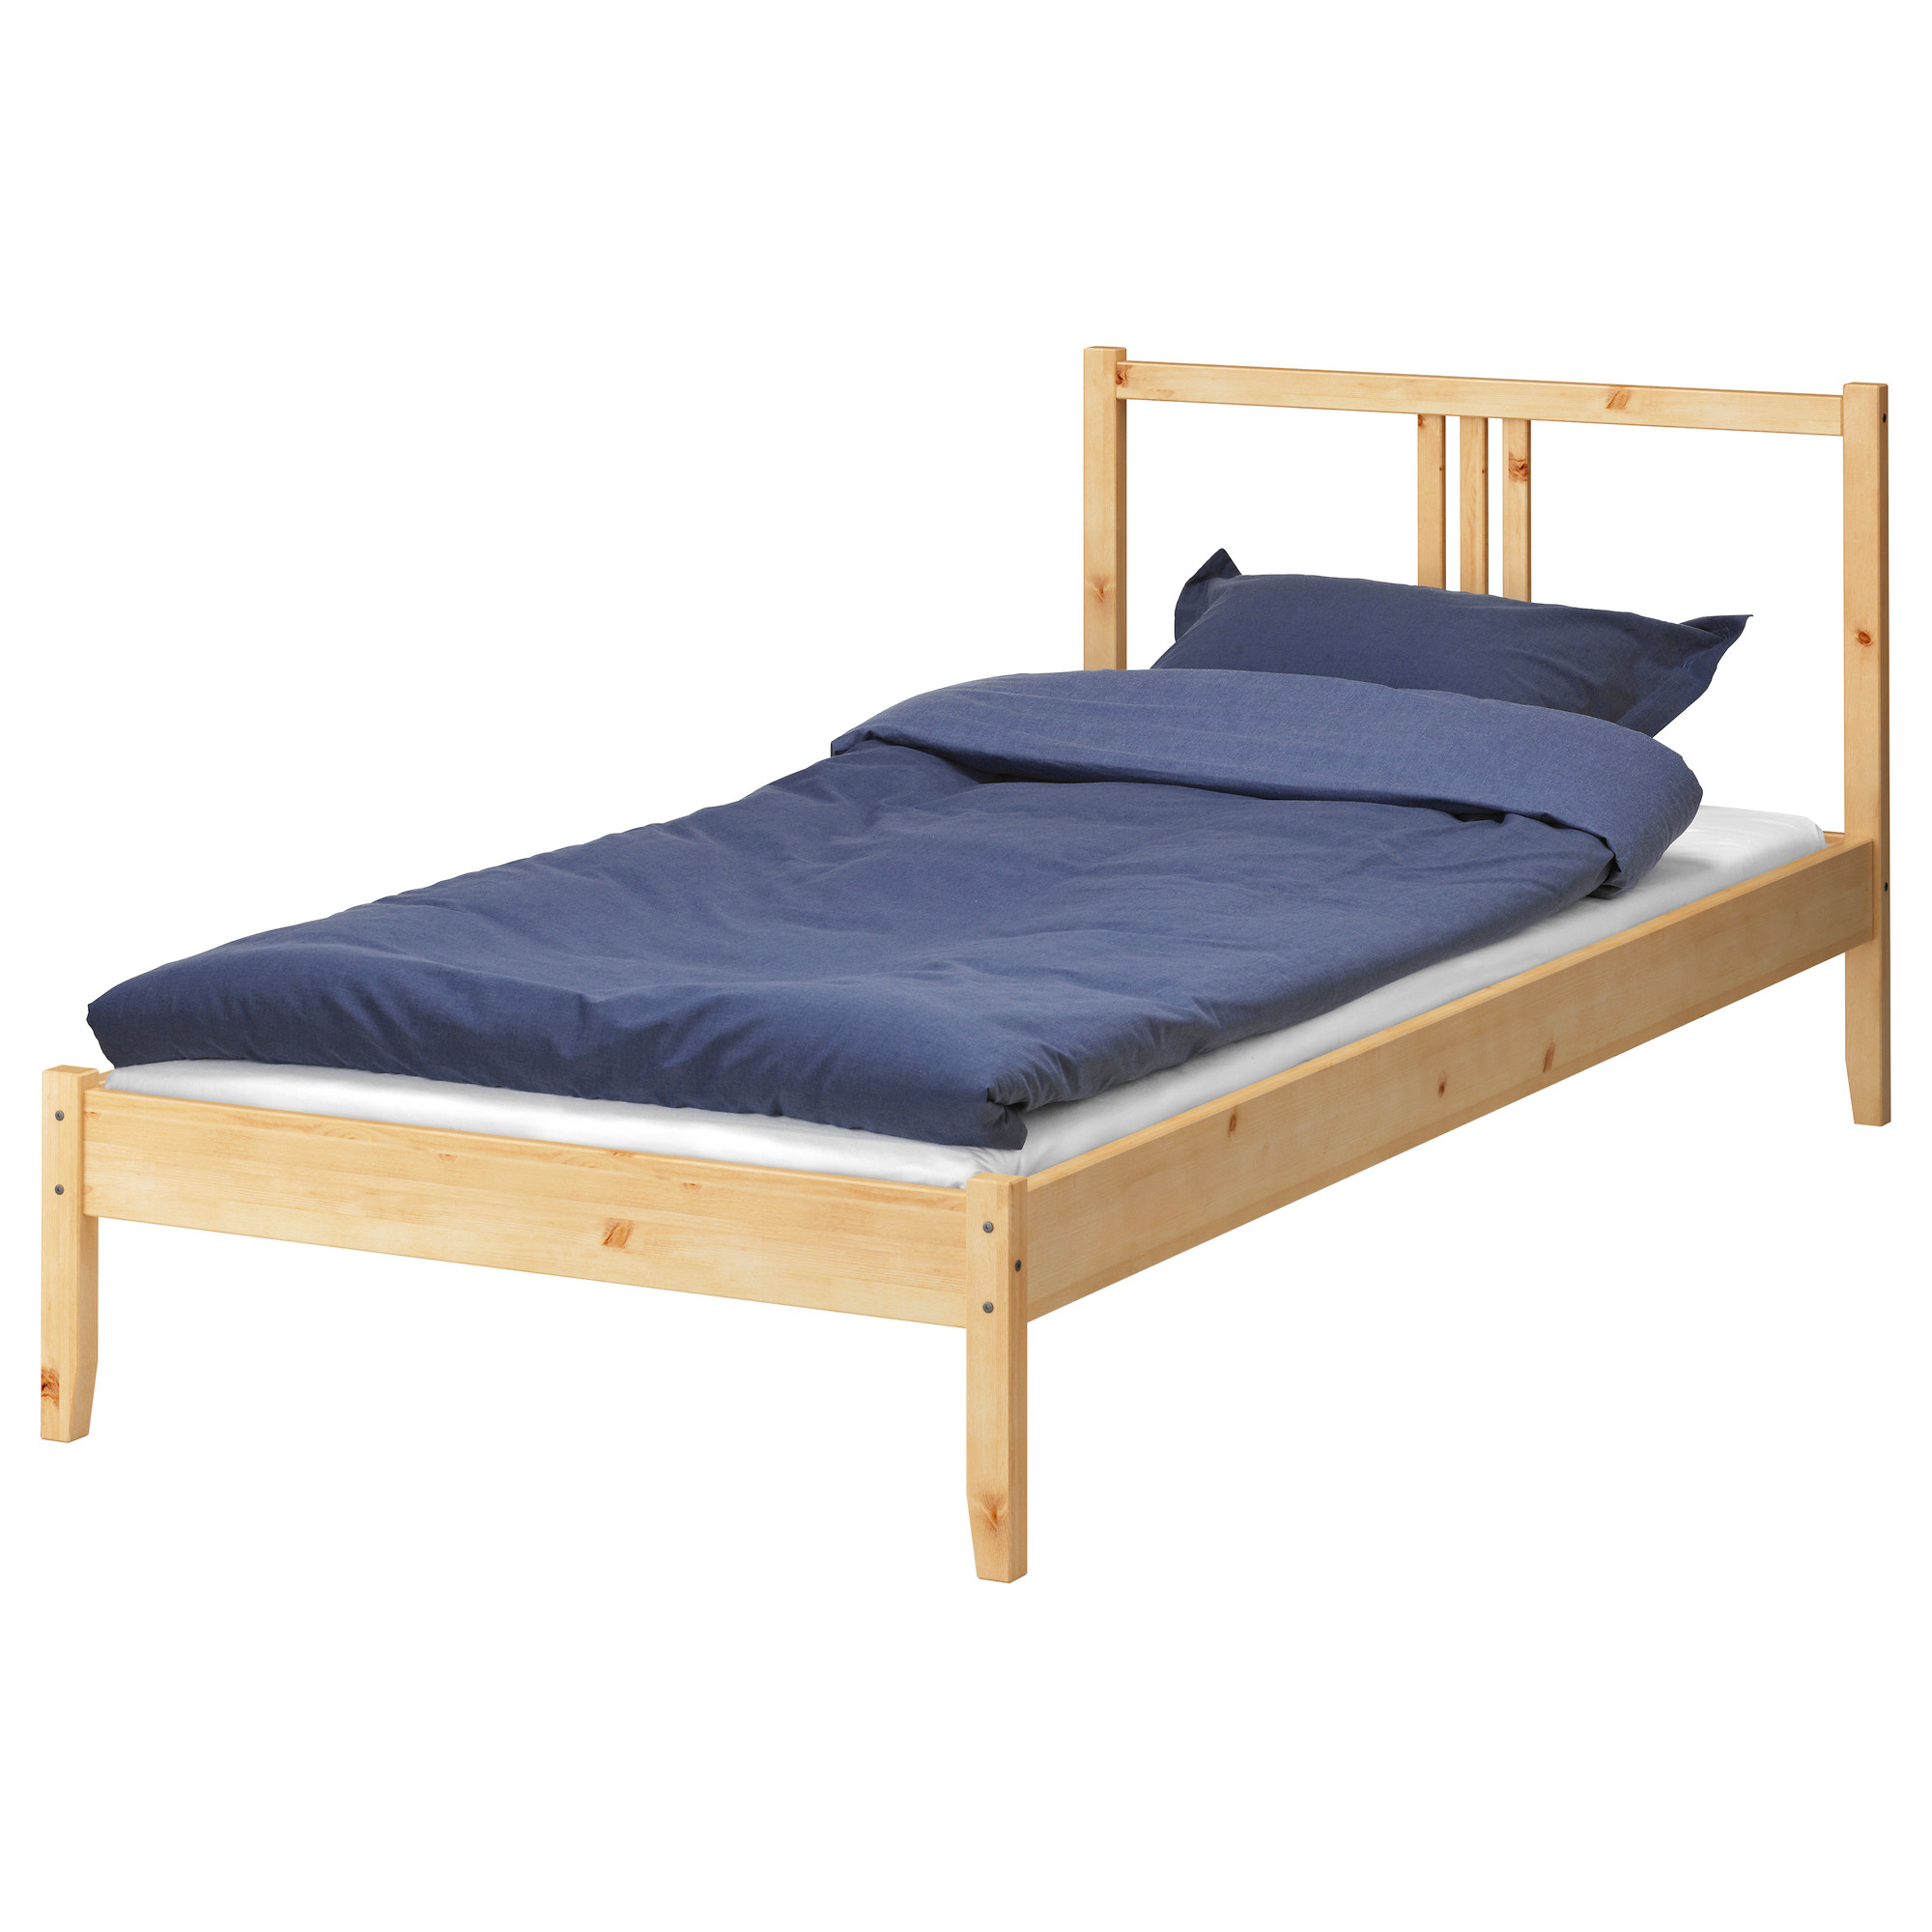 Futon Beds Bed Sets Queen Nyvoll